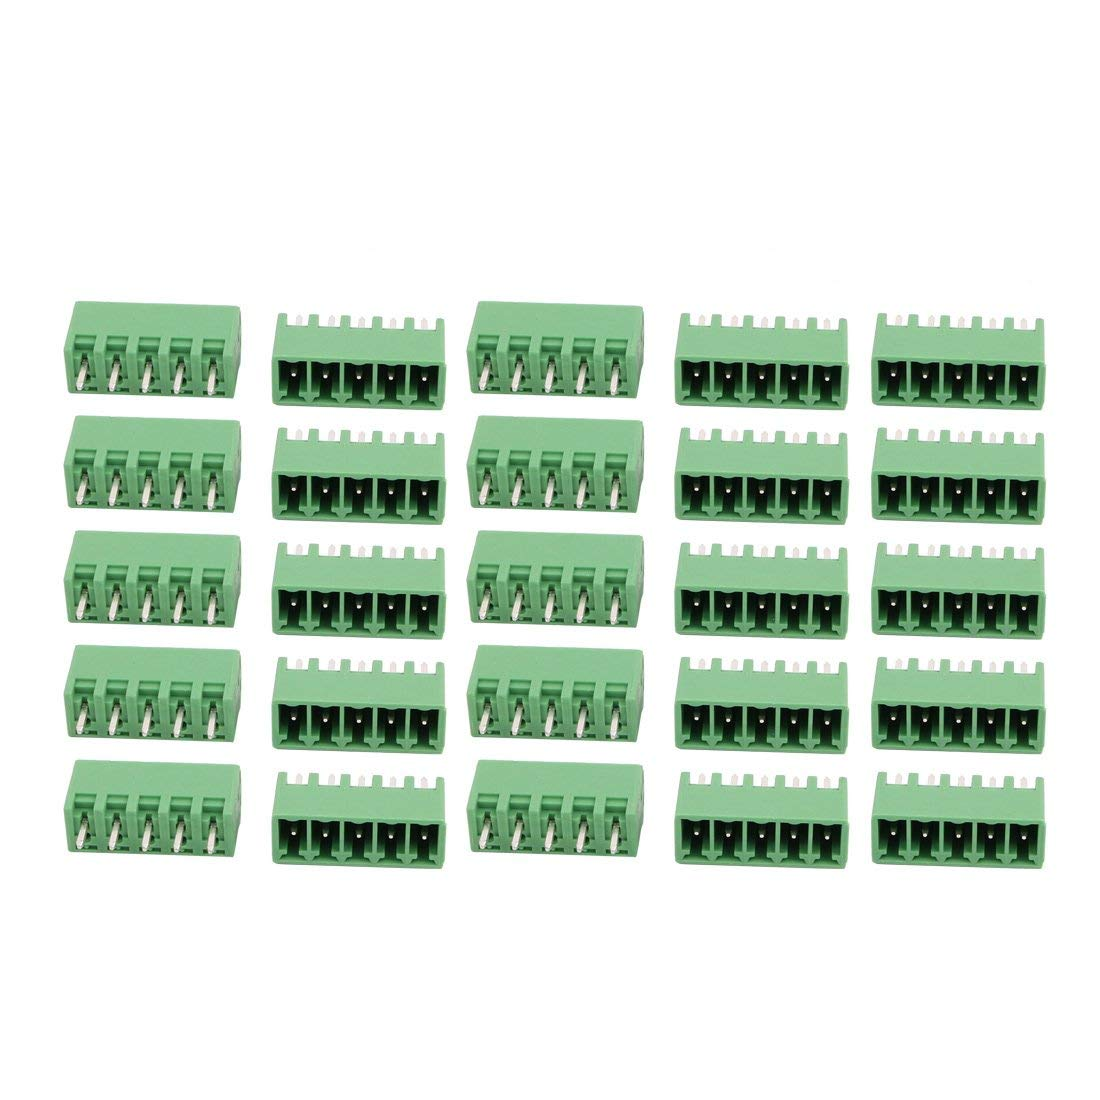 uxcell 25Pcs AC 300V 8A 3.81mm Pitch 5P Terminal Block Wire Connection for PCB Mounting